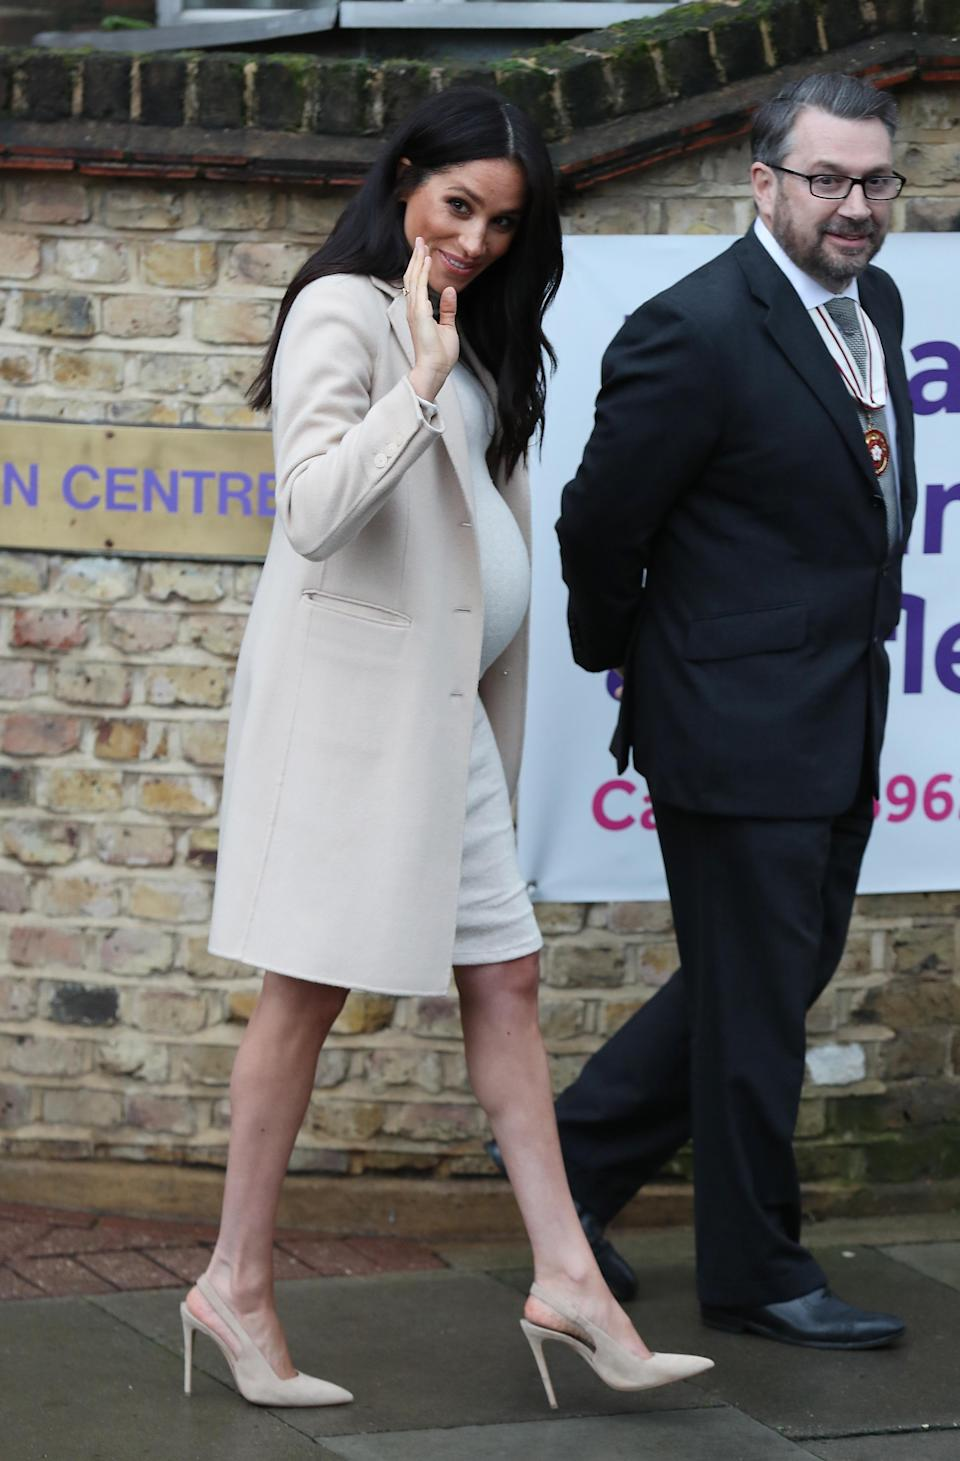 The Duchess of Sussex surprised fans in a £25 H&M maternity dress on January 16. A slick Armani coat, £713 Stella McCartney bag and £564 Manolo Blahnik slingbacks finished the minimal look. For a touch of sparkle, Meghan opted for her go-to £876 Birks diamond stud earrings. [Photo: Getty]